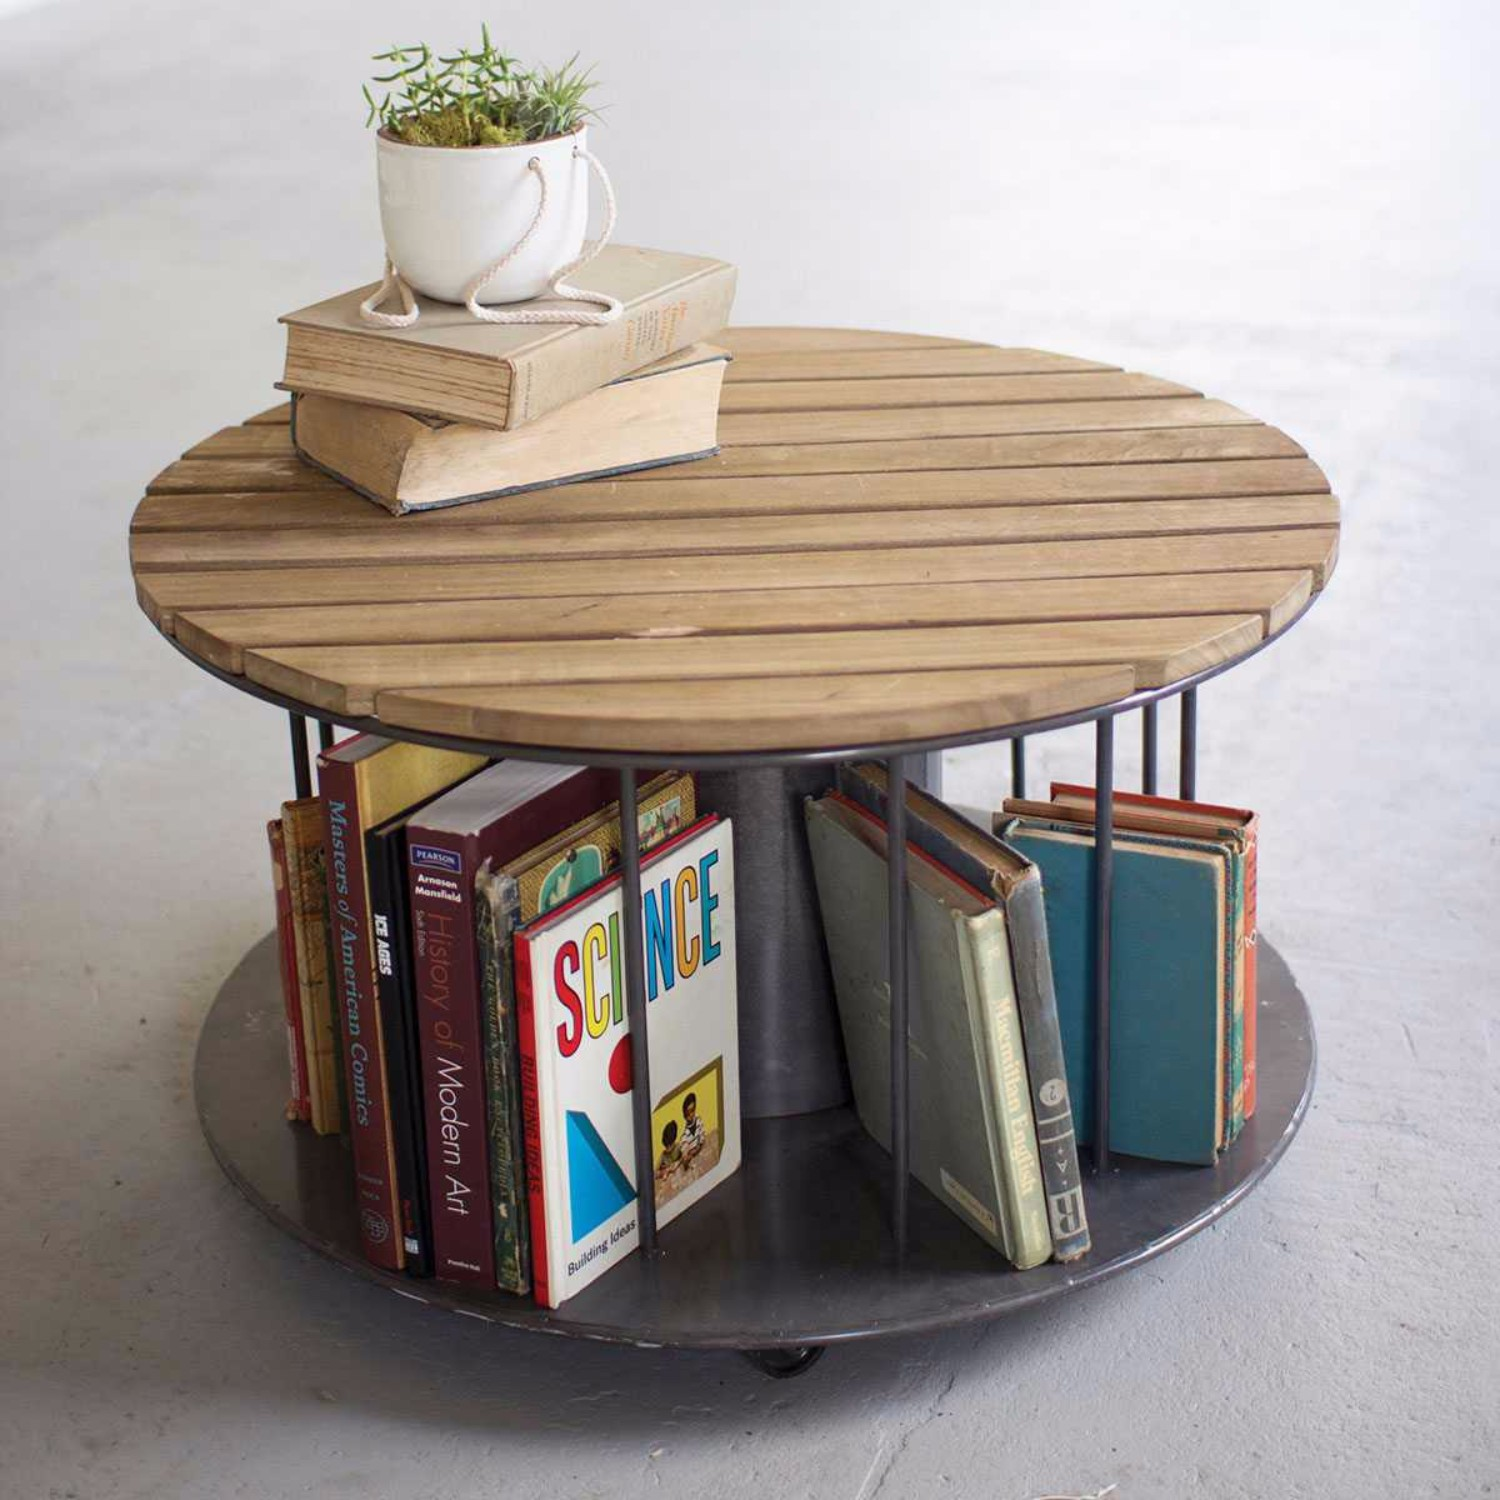 10 Inspiring Minimalist Tables Coffee Tables 10 Inspiring Minimalist Coffee Tables storage space for books 9 1500